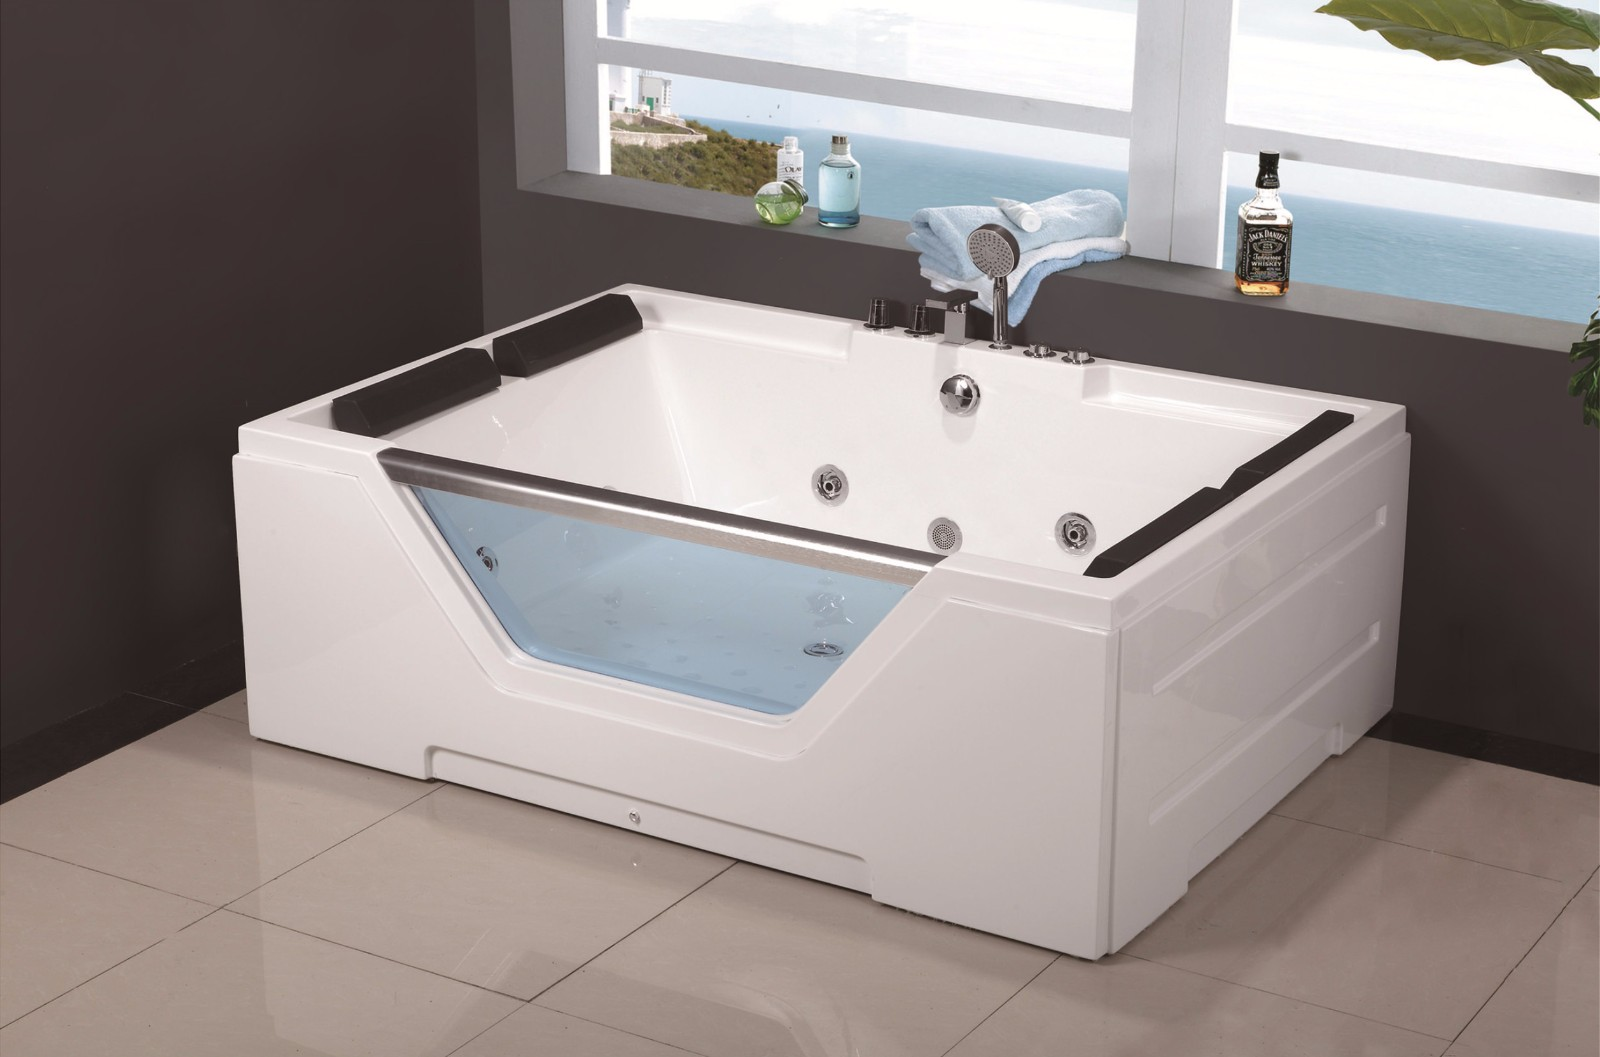 C-436 (C-3099) Luxury Acrylic 2 Two Person Modern Simple Design Style Whirlpool Jetted Massage Hot Tub Bathroom Bathtub.jpg